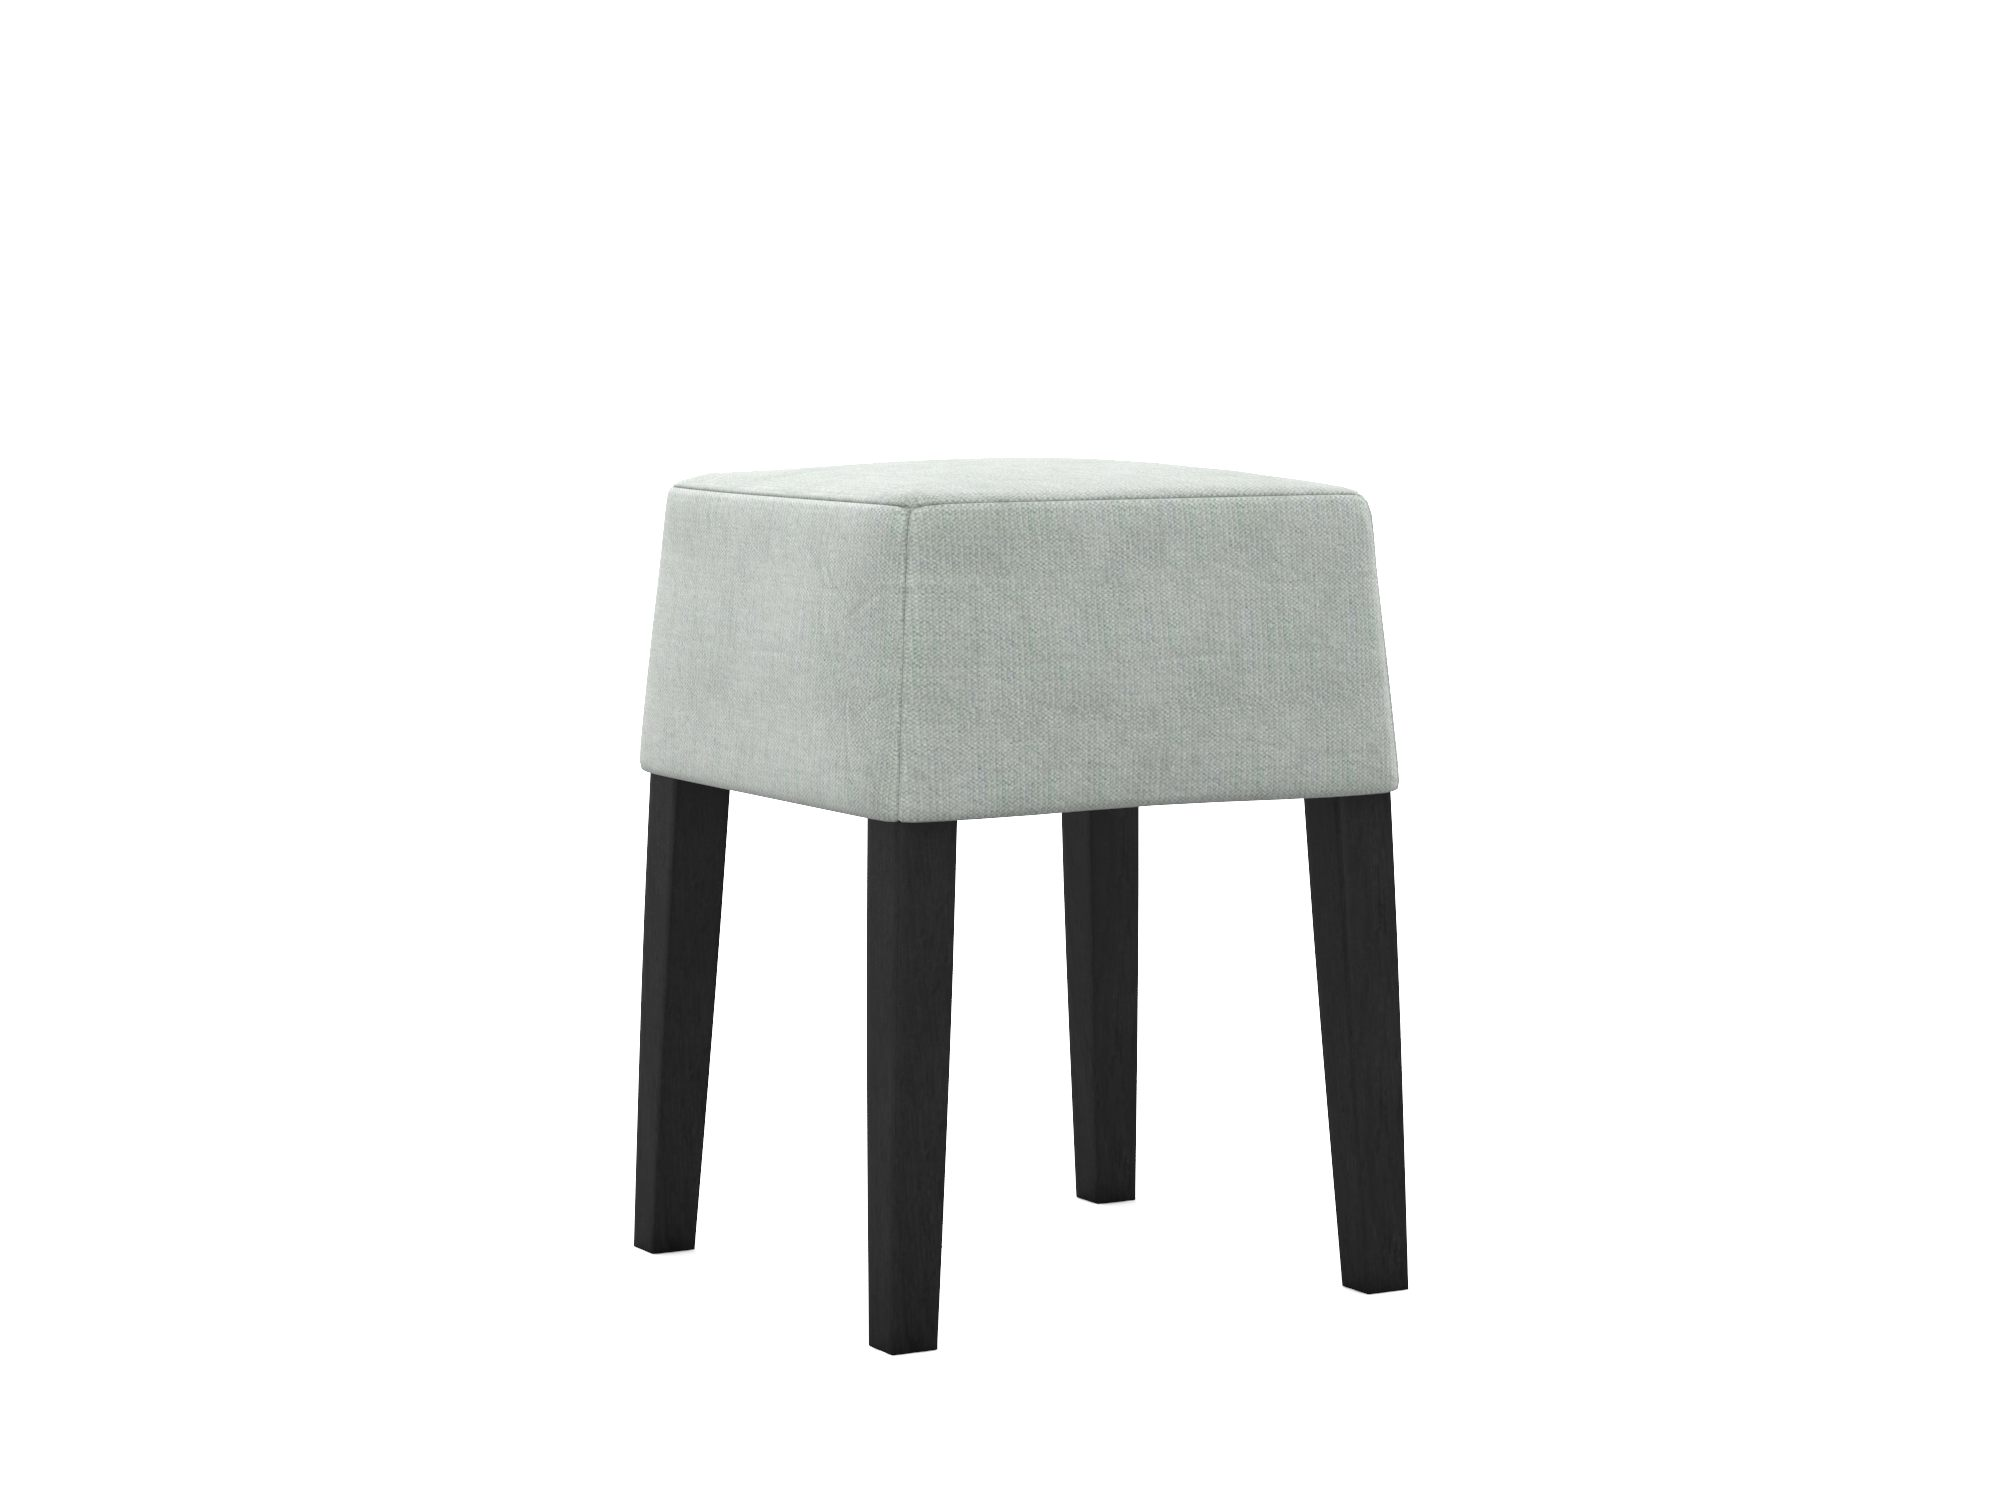 Nils stool cover